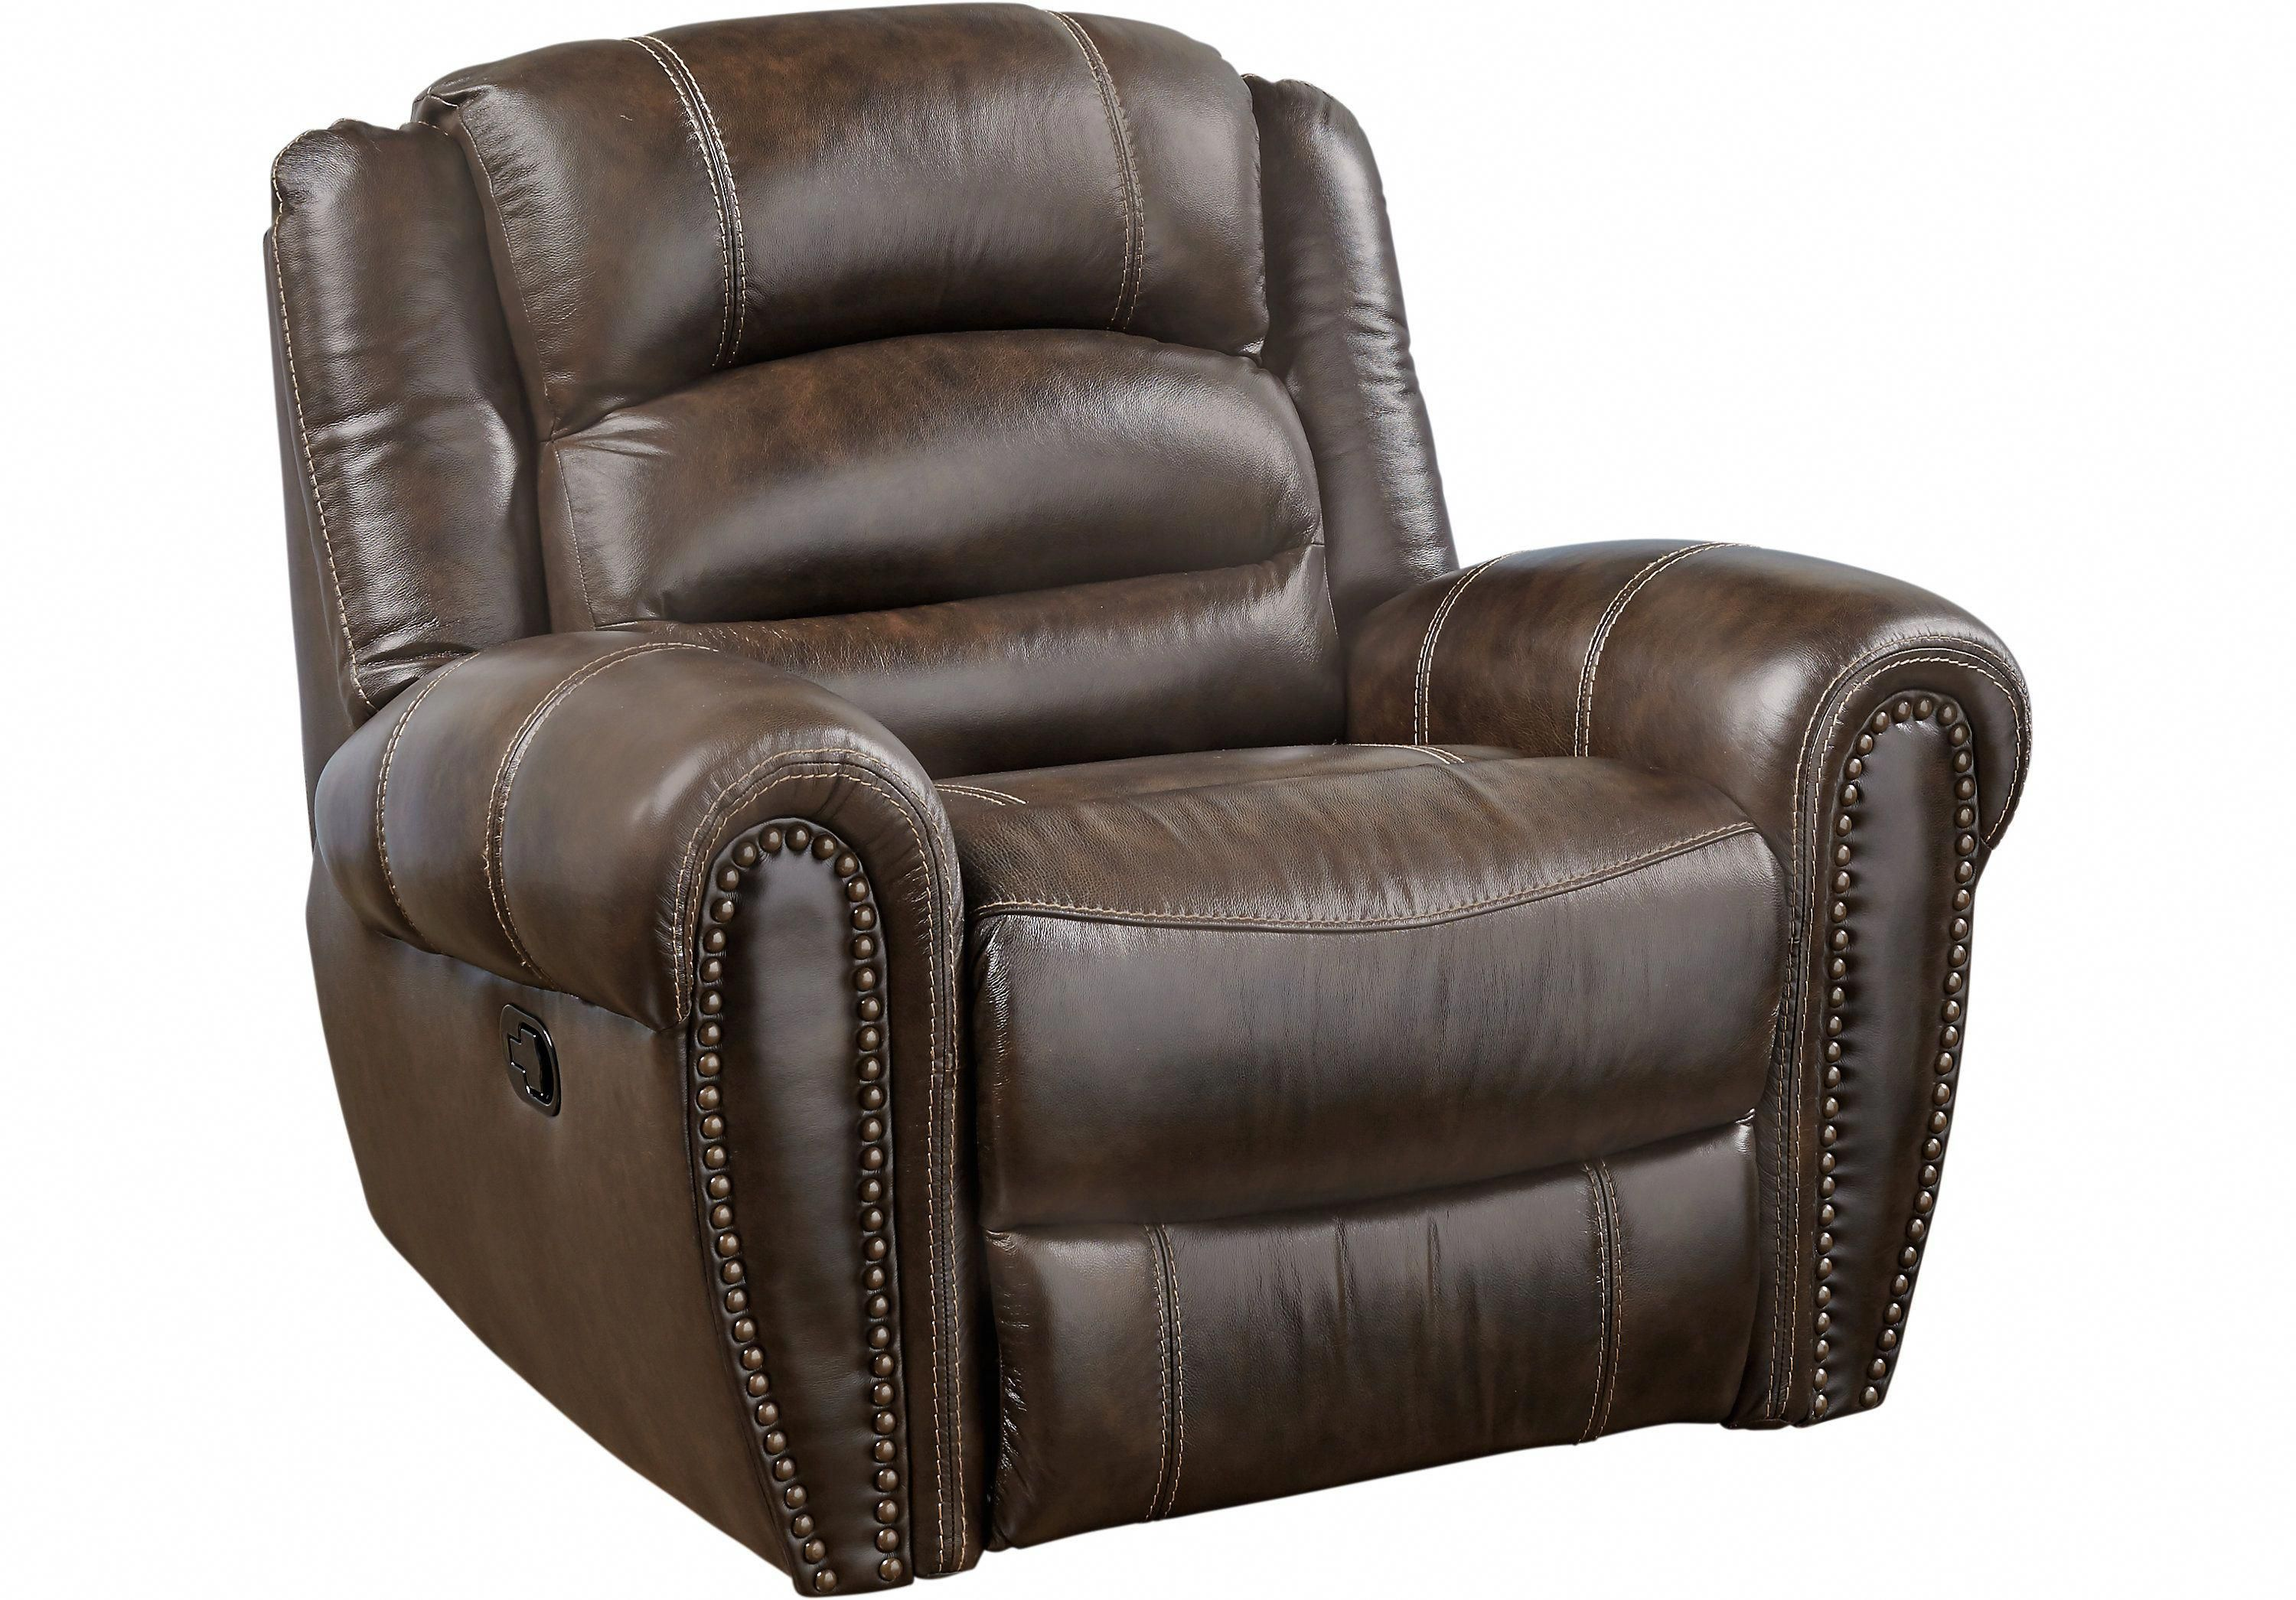 Donelle Brown Leather Glider Recliner Leather Recliners Brown Gliderreclinerchair Reclining Sectional Glider Recliner Brown Leather Recliner Chair